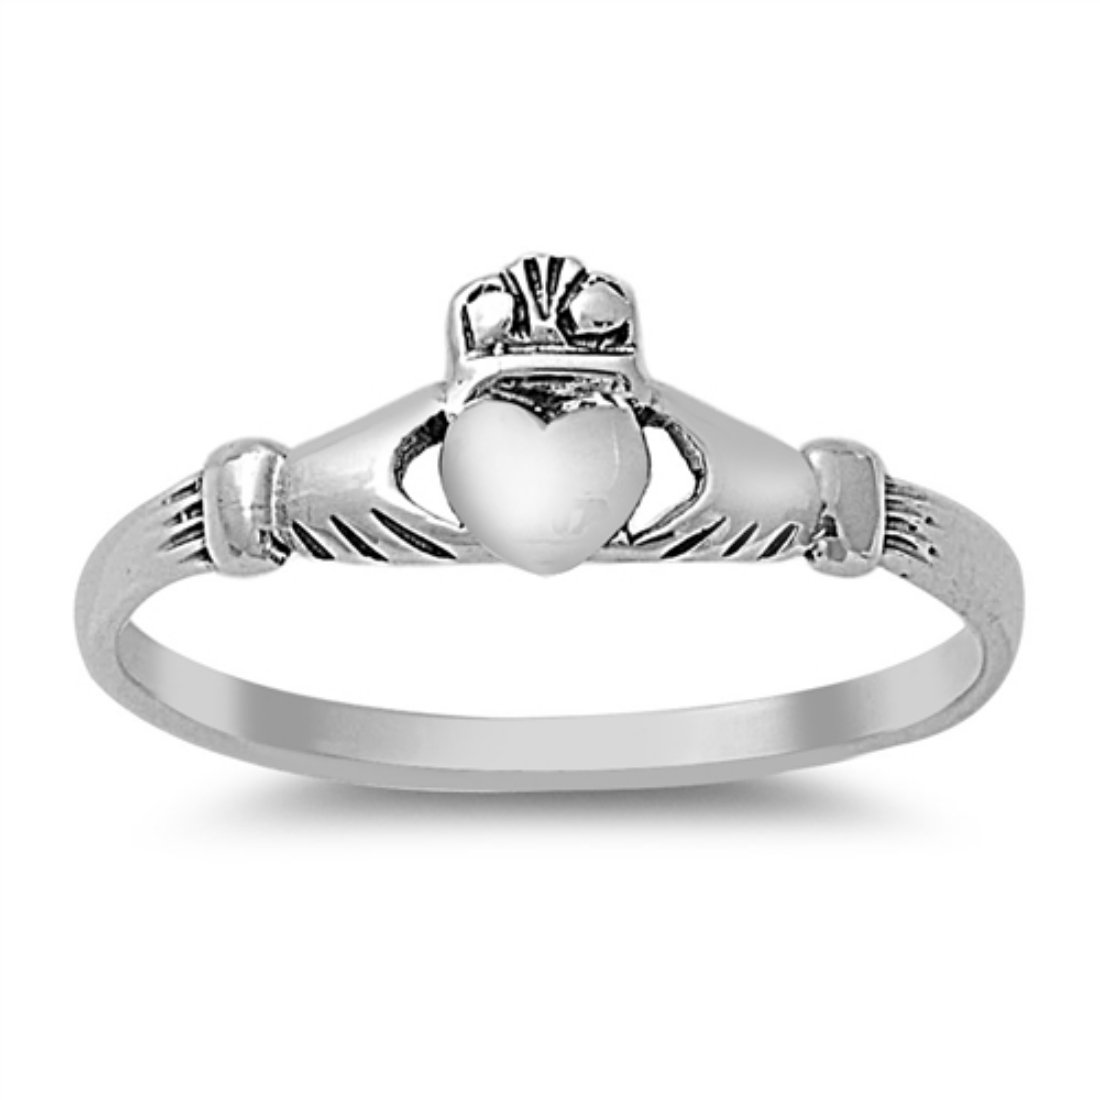 Petite Dainty Irish Claddagh Promise Band Ring 925 Sterling Silver Wedding Engagement 1-10